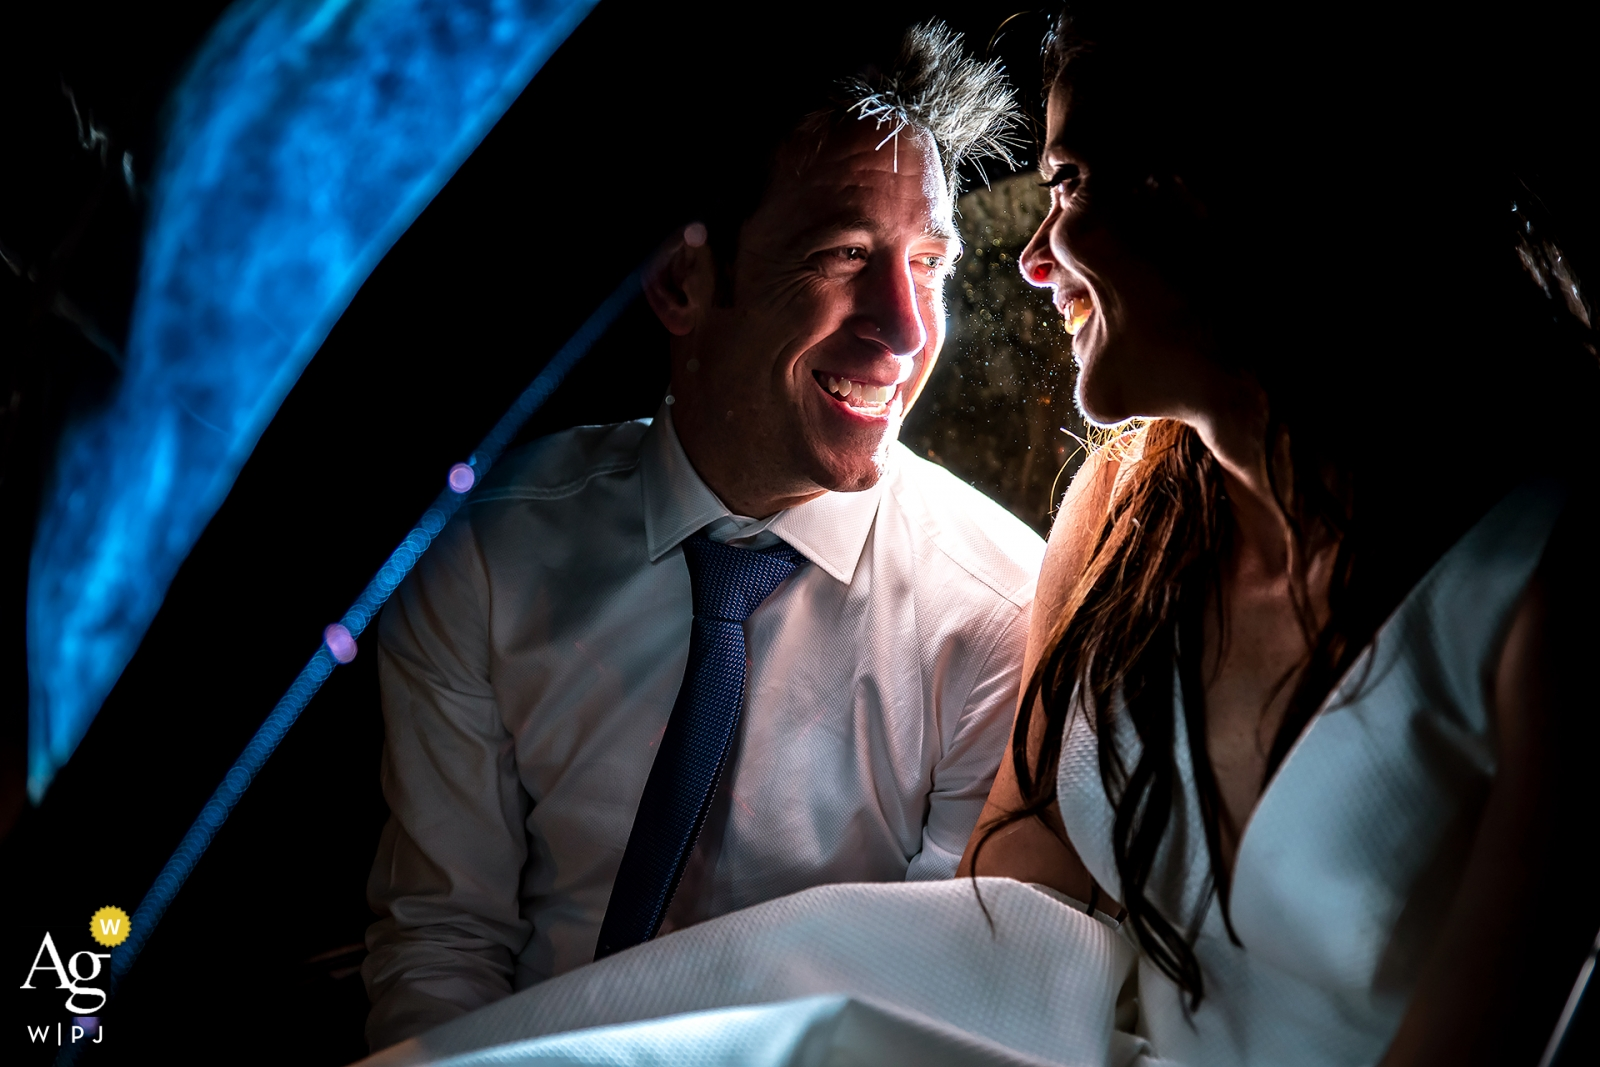 Nighttime wedding portrait of the bride and groom at The St. Vrain